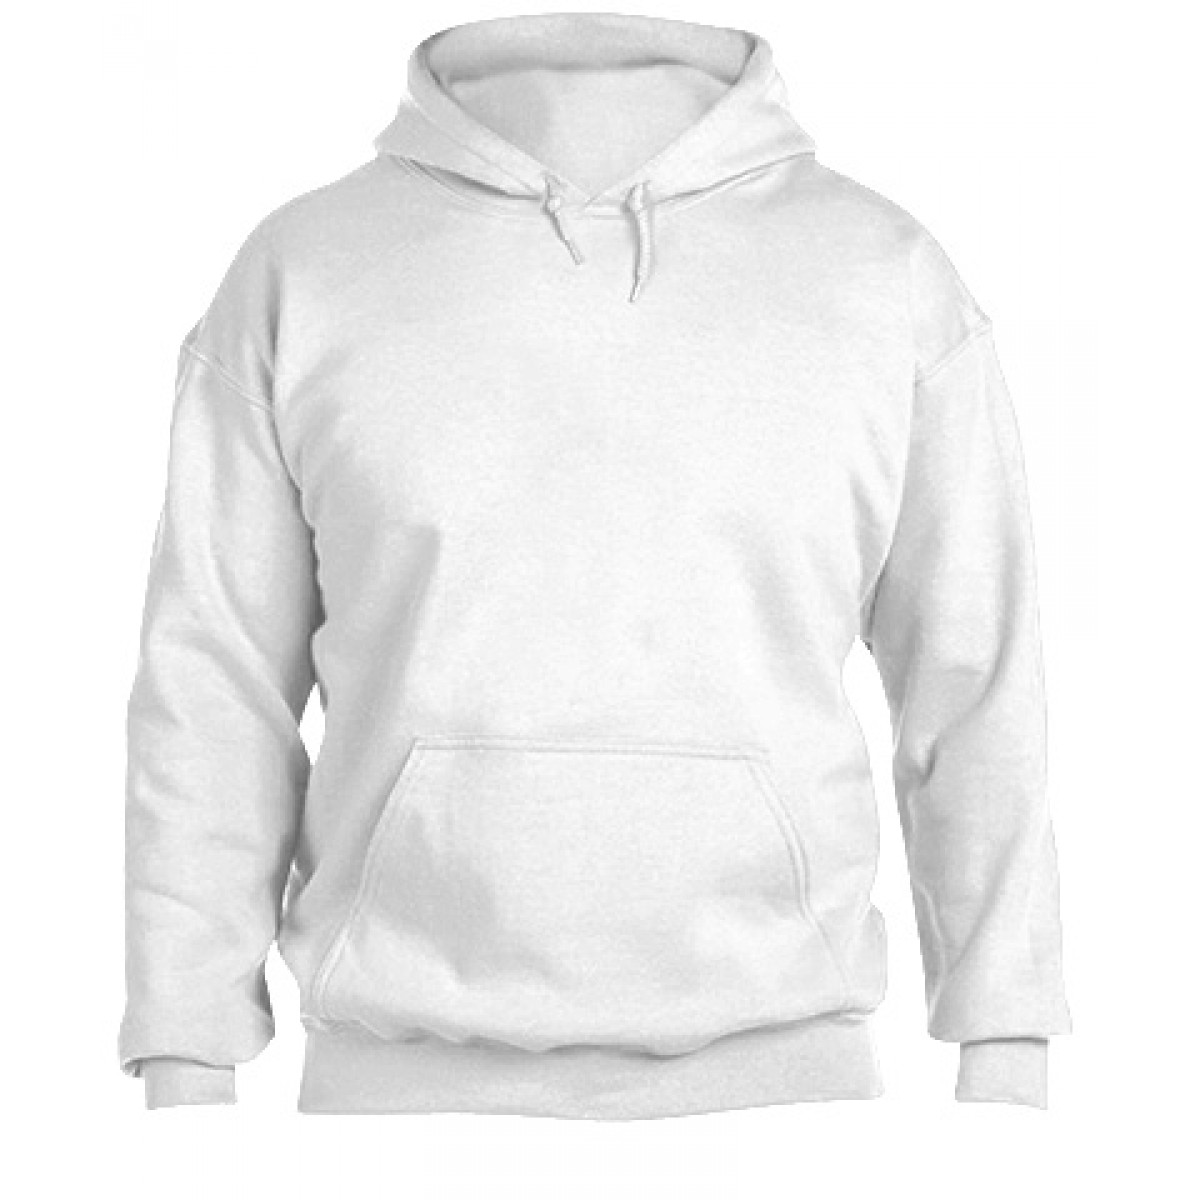 Hooded Sweatshirt 50/50 Heavy Blend-White-L